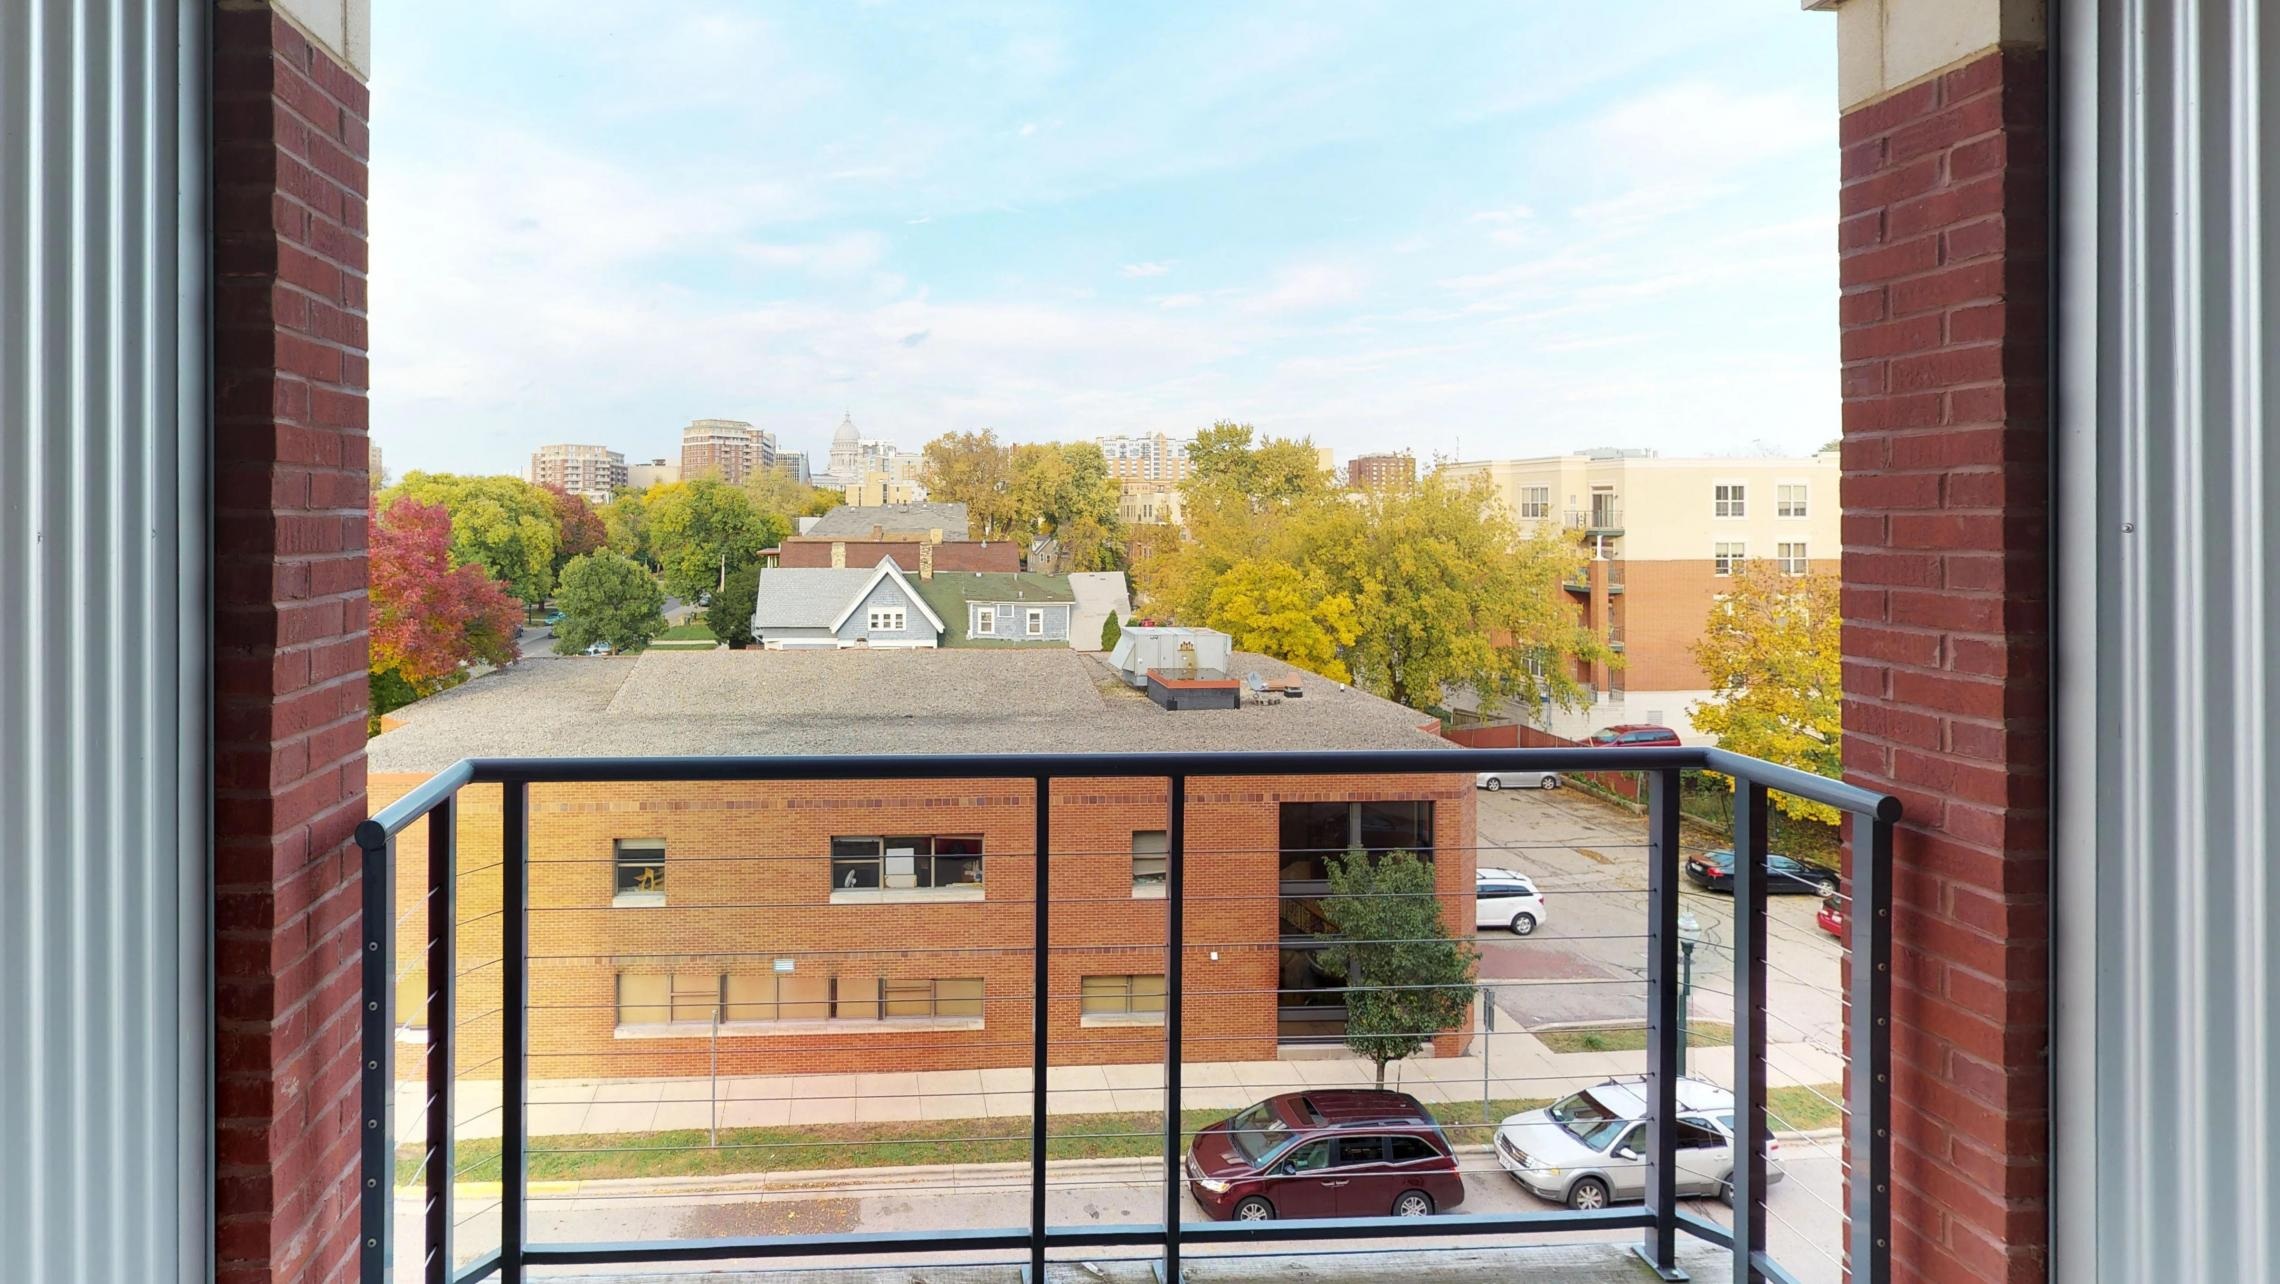 The-Depot-Apartments-Downtown-Madison-Lifestyle-Large-Closet-Bike-Storage-Washington-Ave-Style-Design-Balcony-Apartment-1-409-One-Bedroom